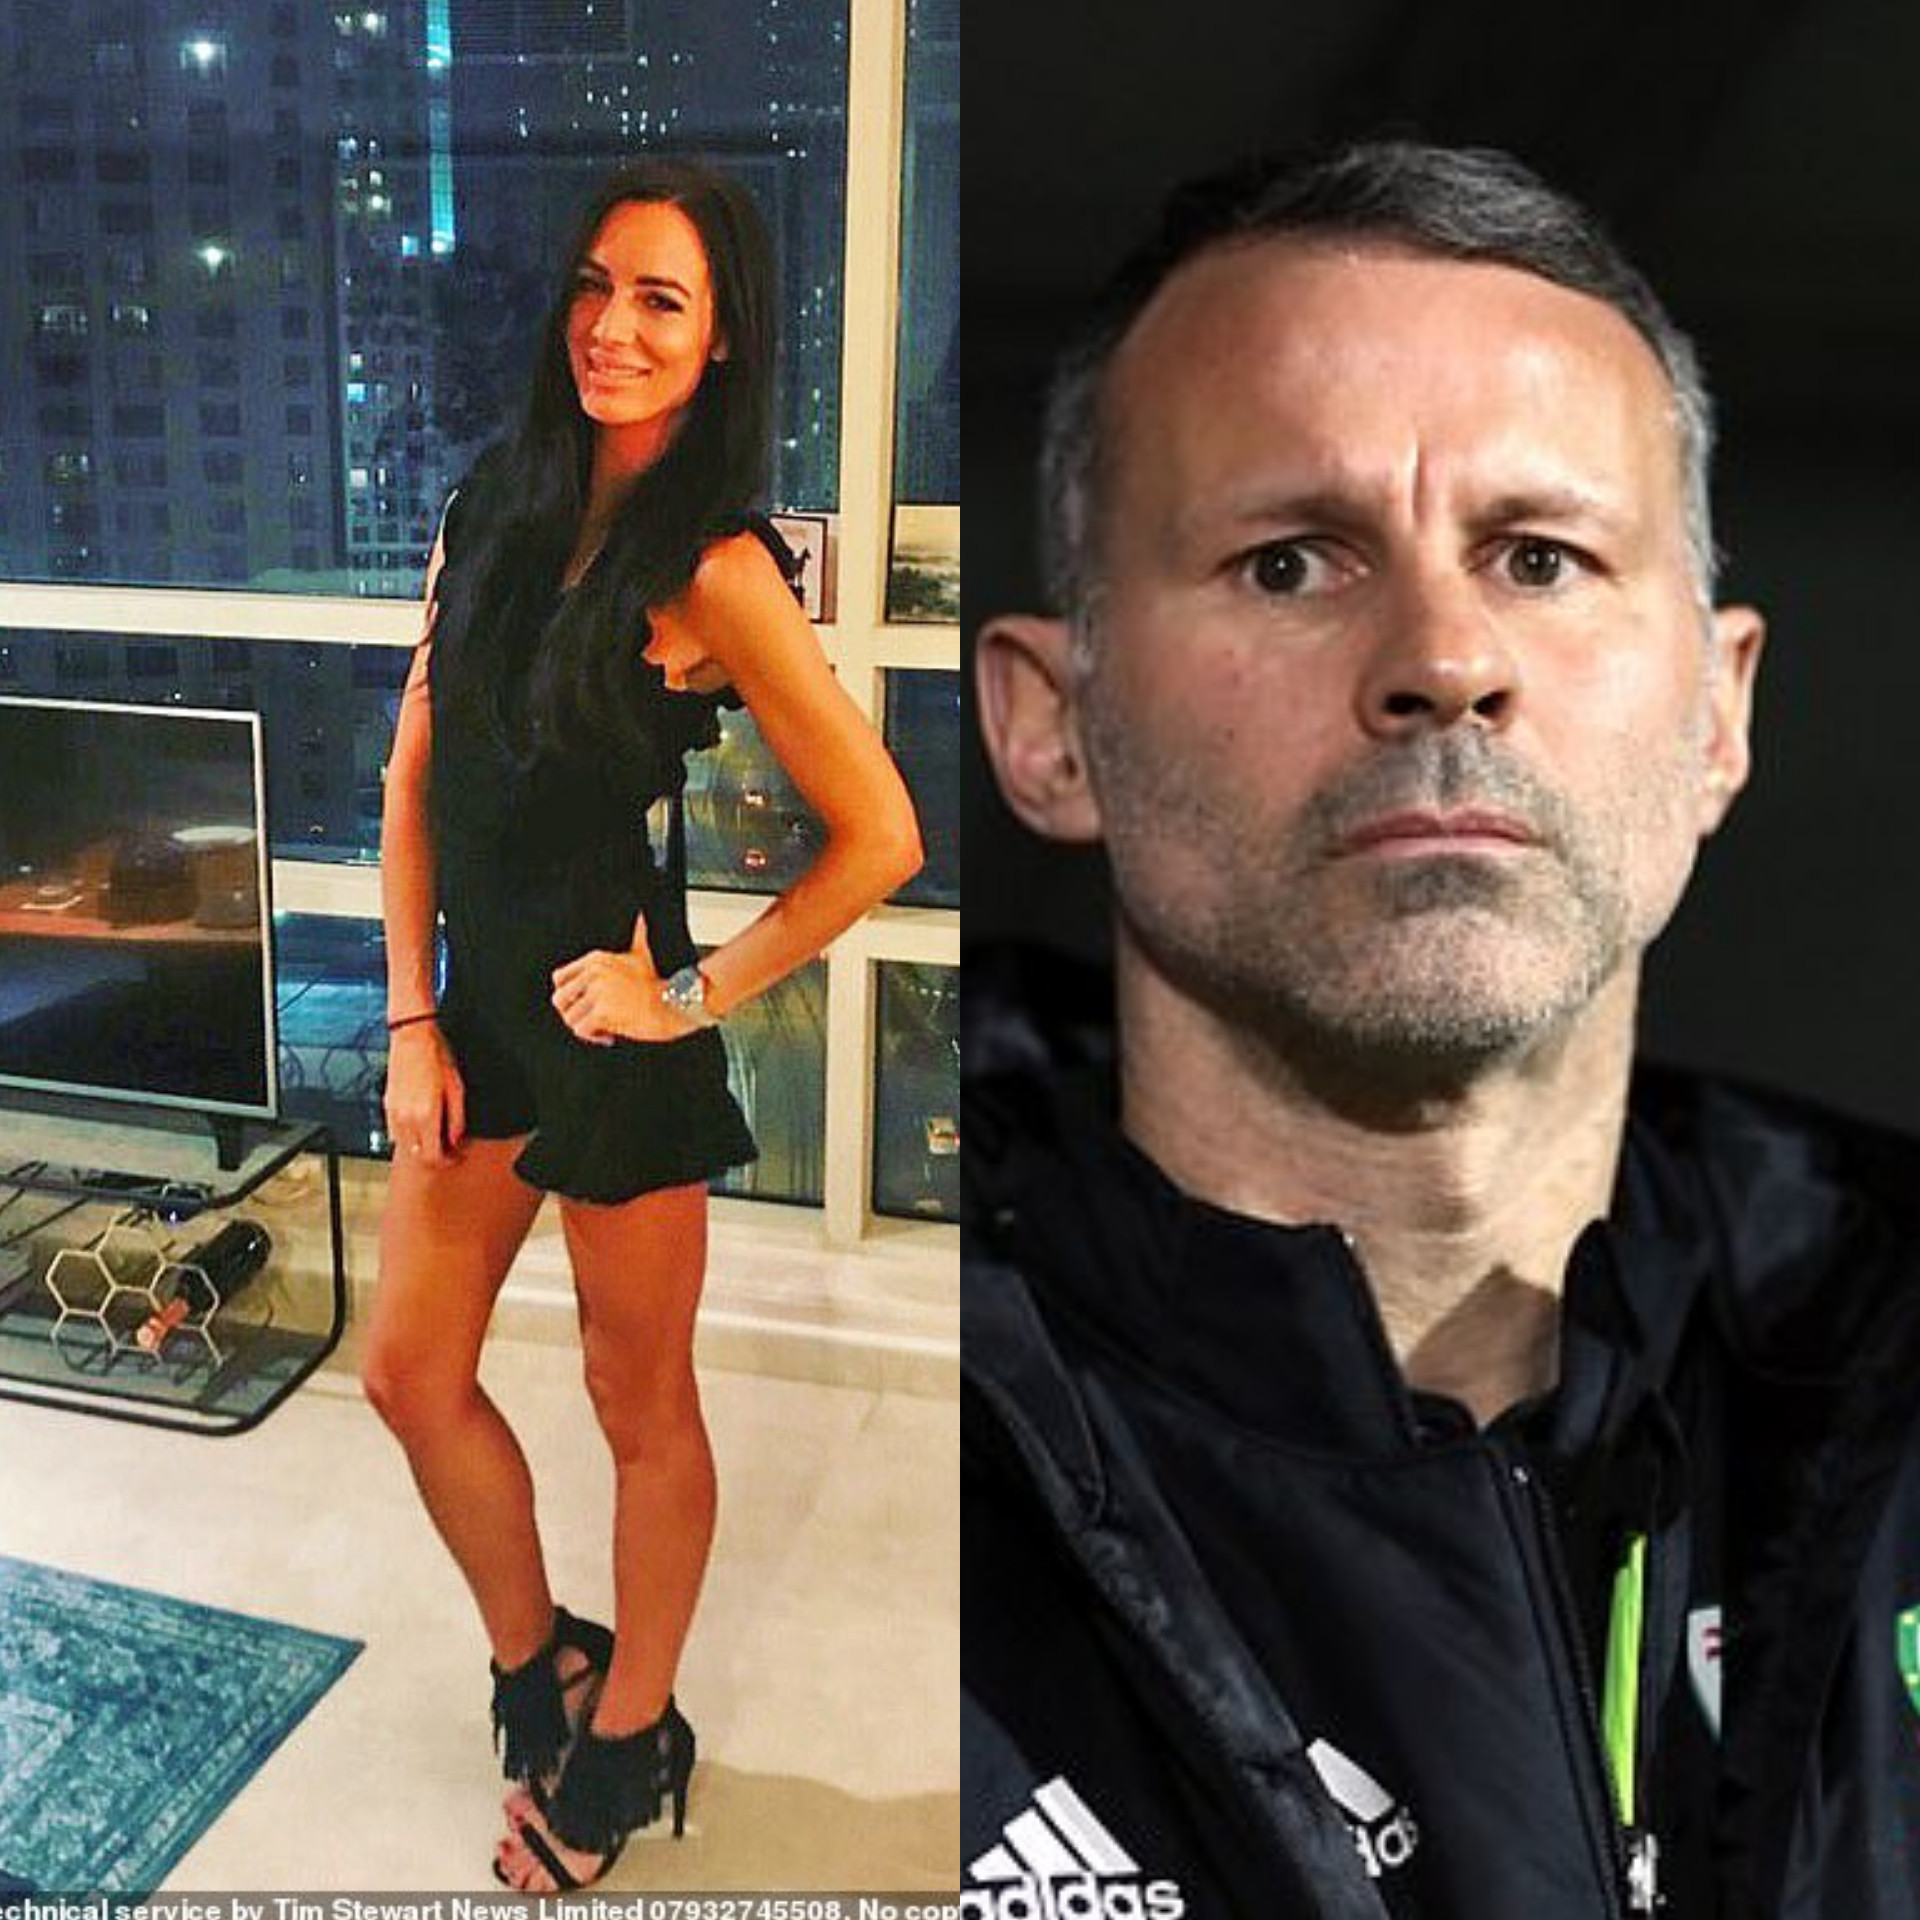 Police charge Ryan Giggs with physical assault, controlling and coercive behaviour towards his ex-girlfriend Kate Greville